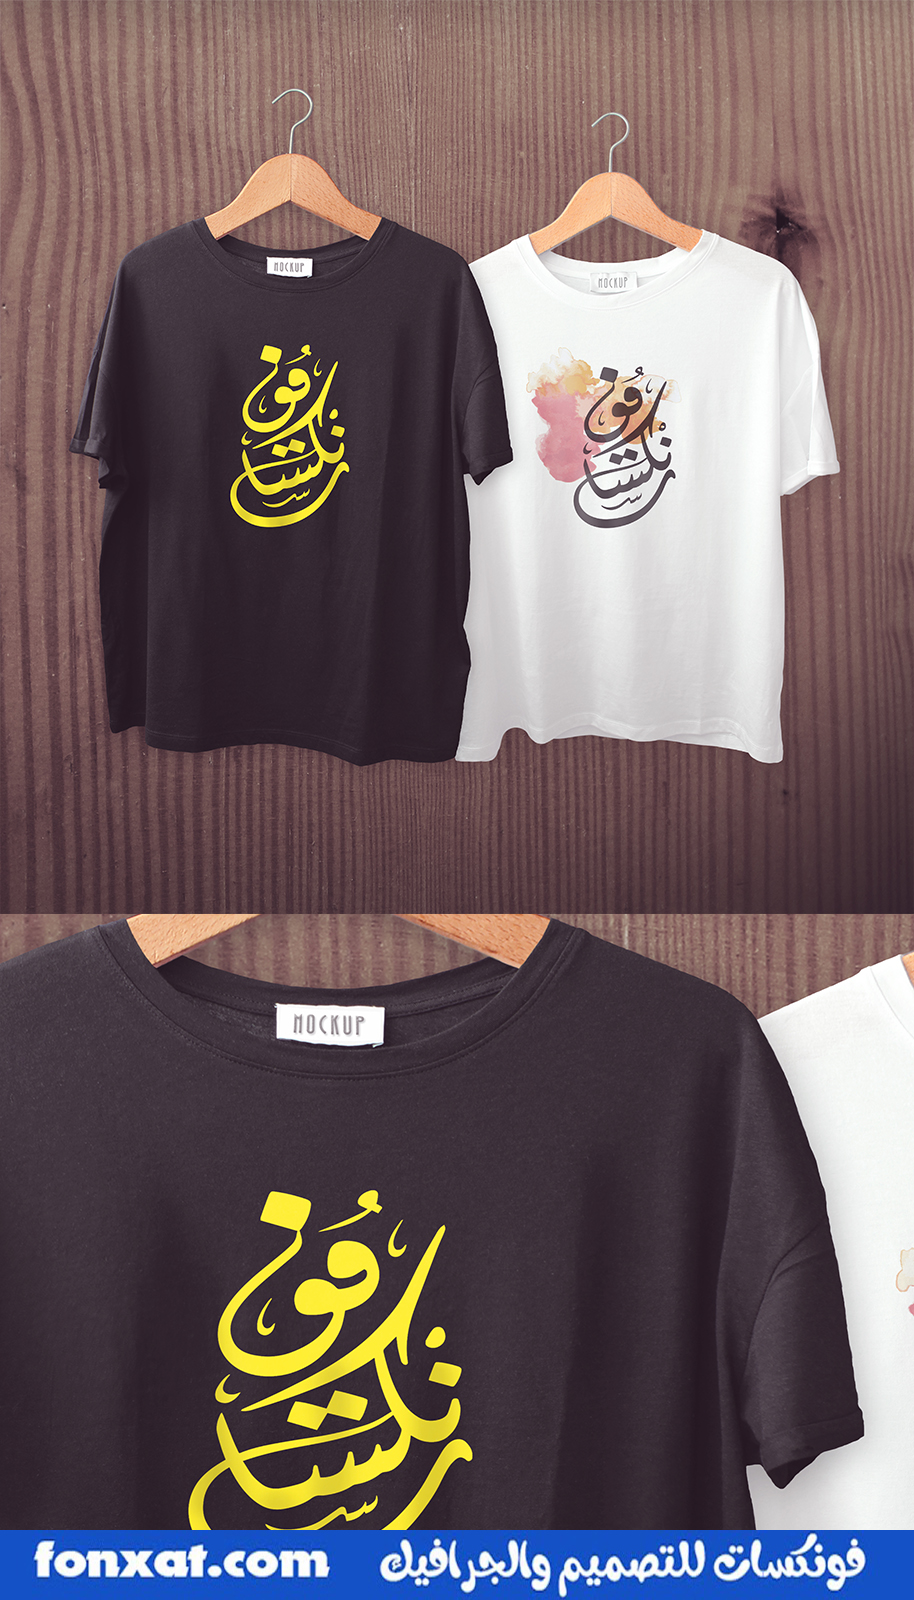 Download t-shirt mock-up psd file to view t-shirt designs